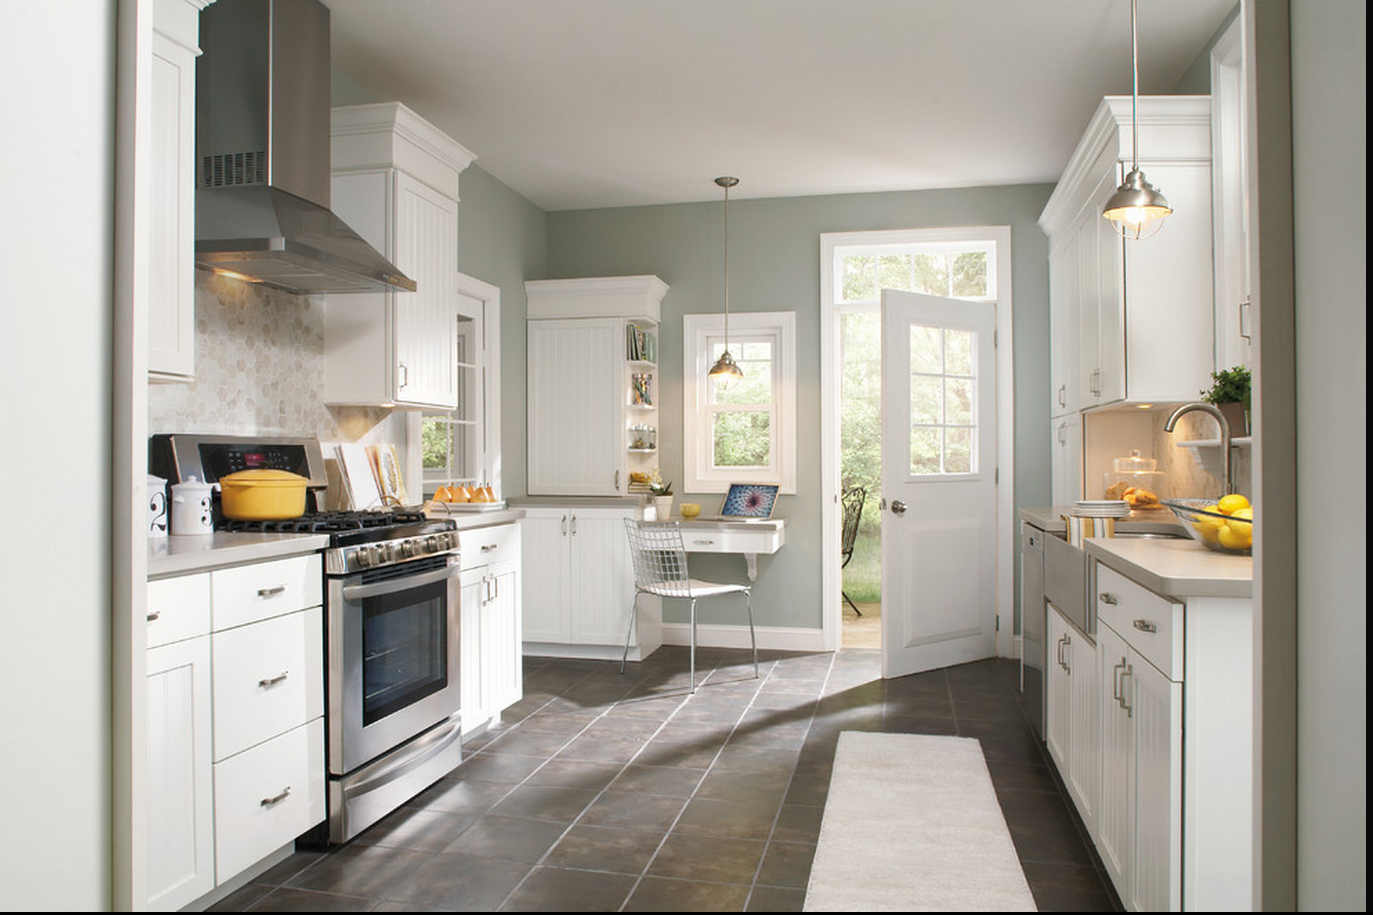 Sherwin Williams Paint Slow Green Good Kitchen Color